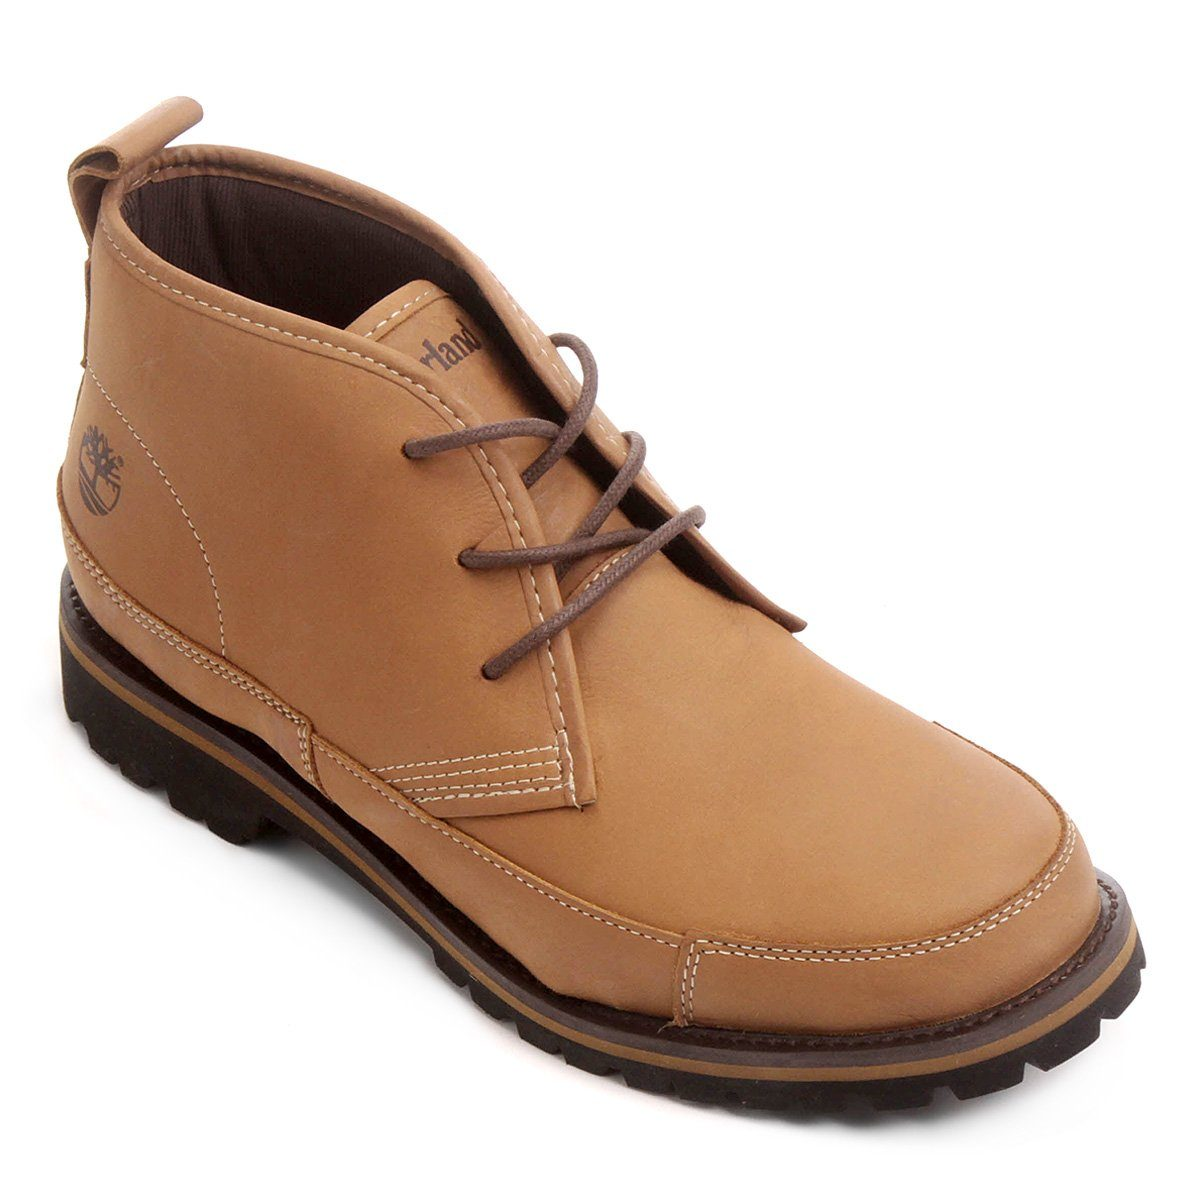 Bota Timberland Ek Leather Chukka Os